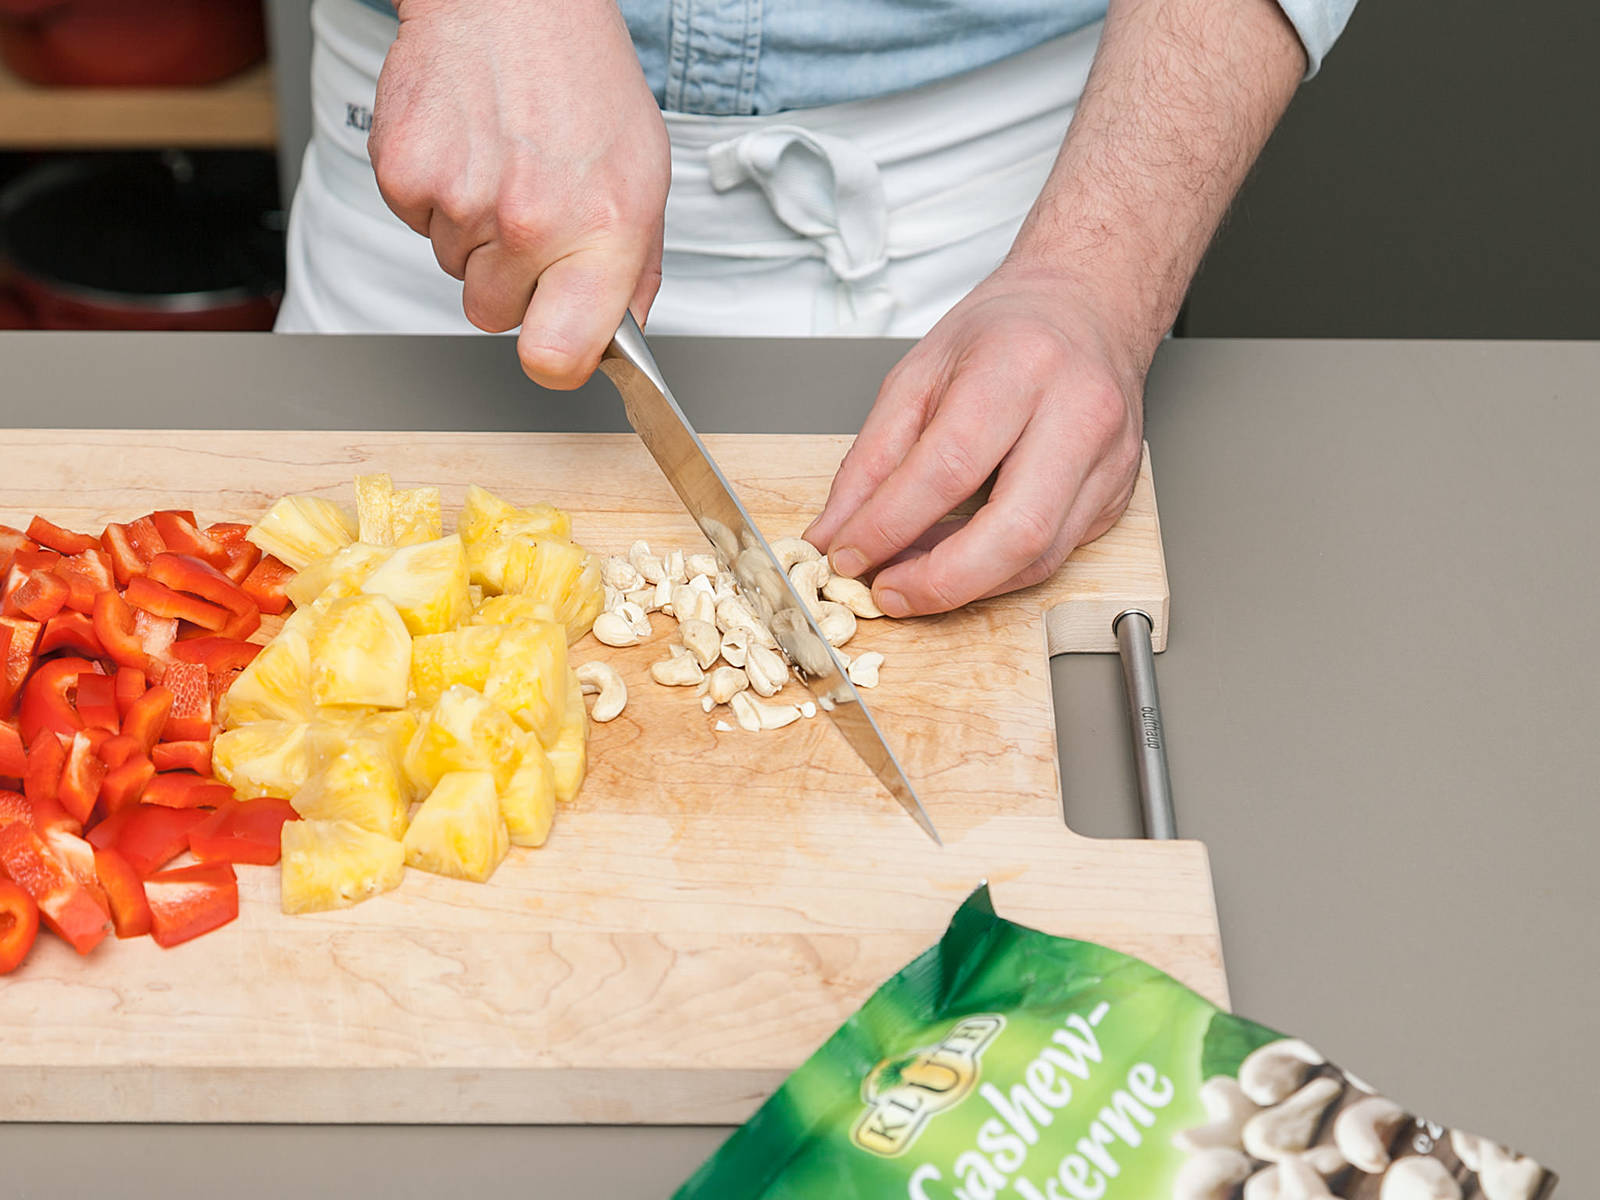 Peel the pineapple. Finely slice pineapple and bell pepper and set aside. Peel and dice onion. Roughly chop cashews.